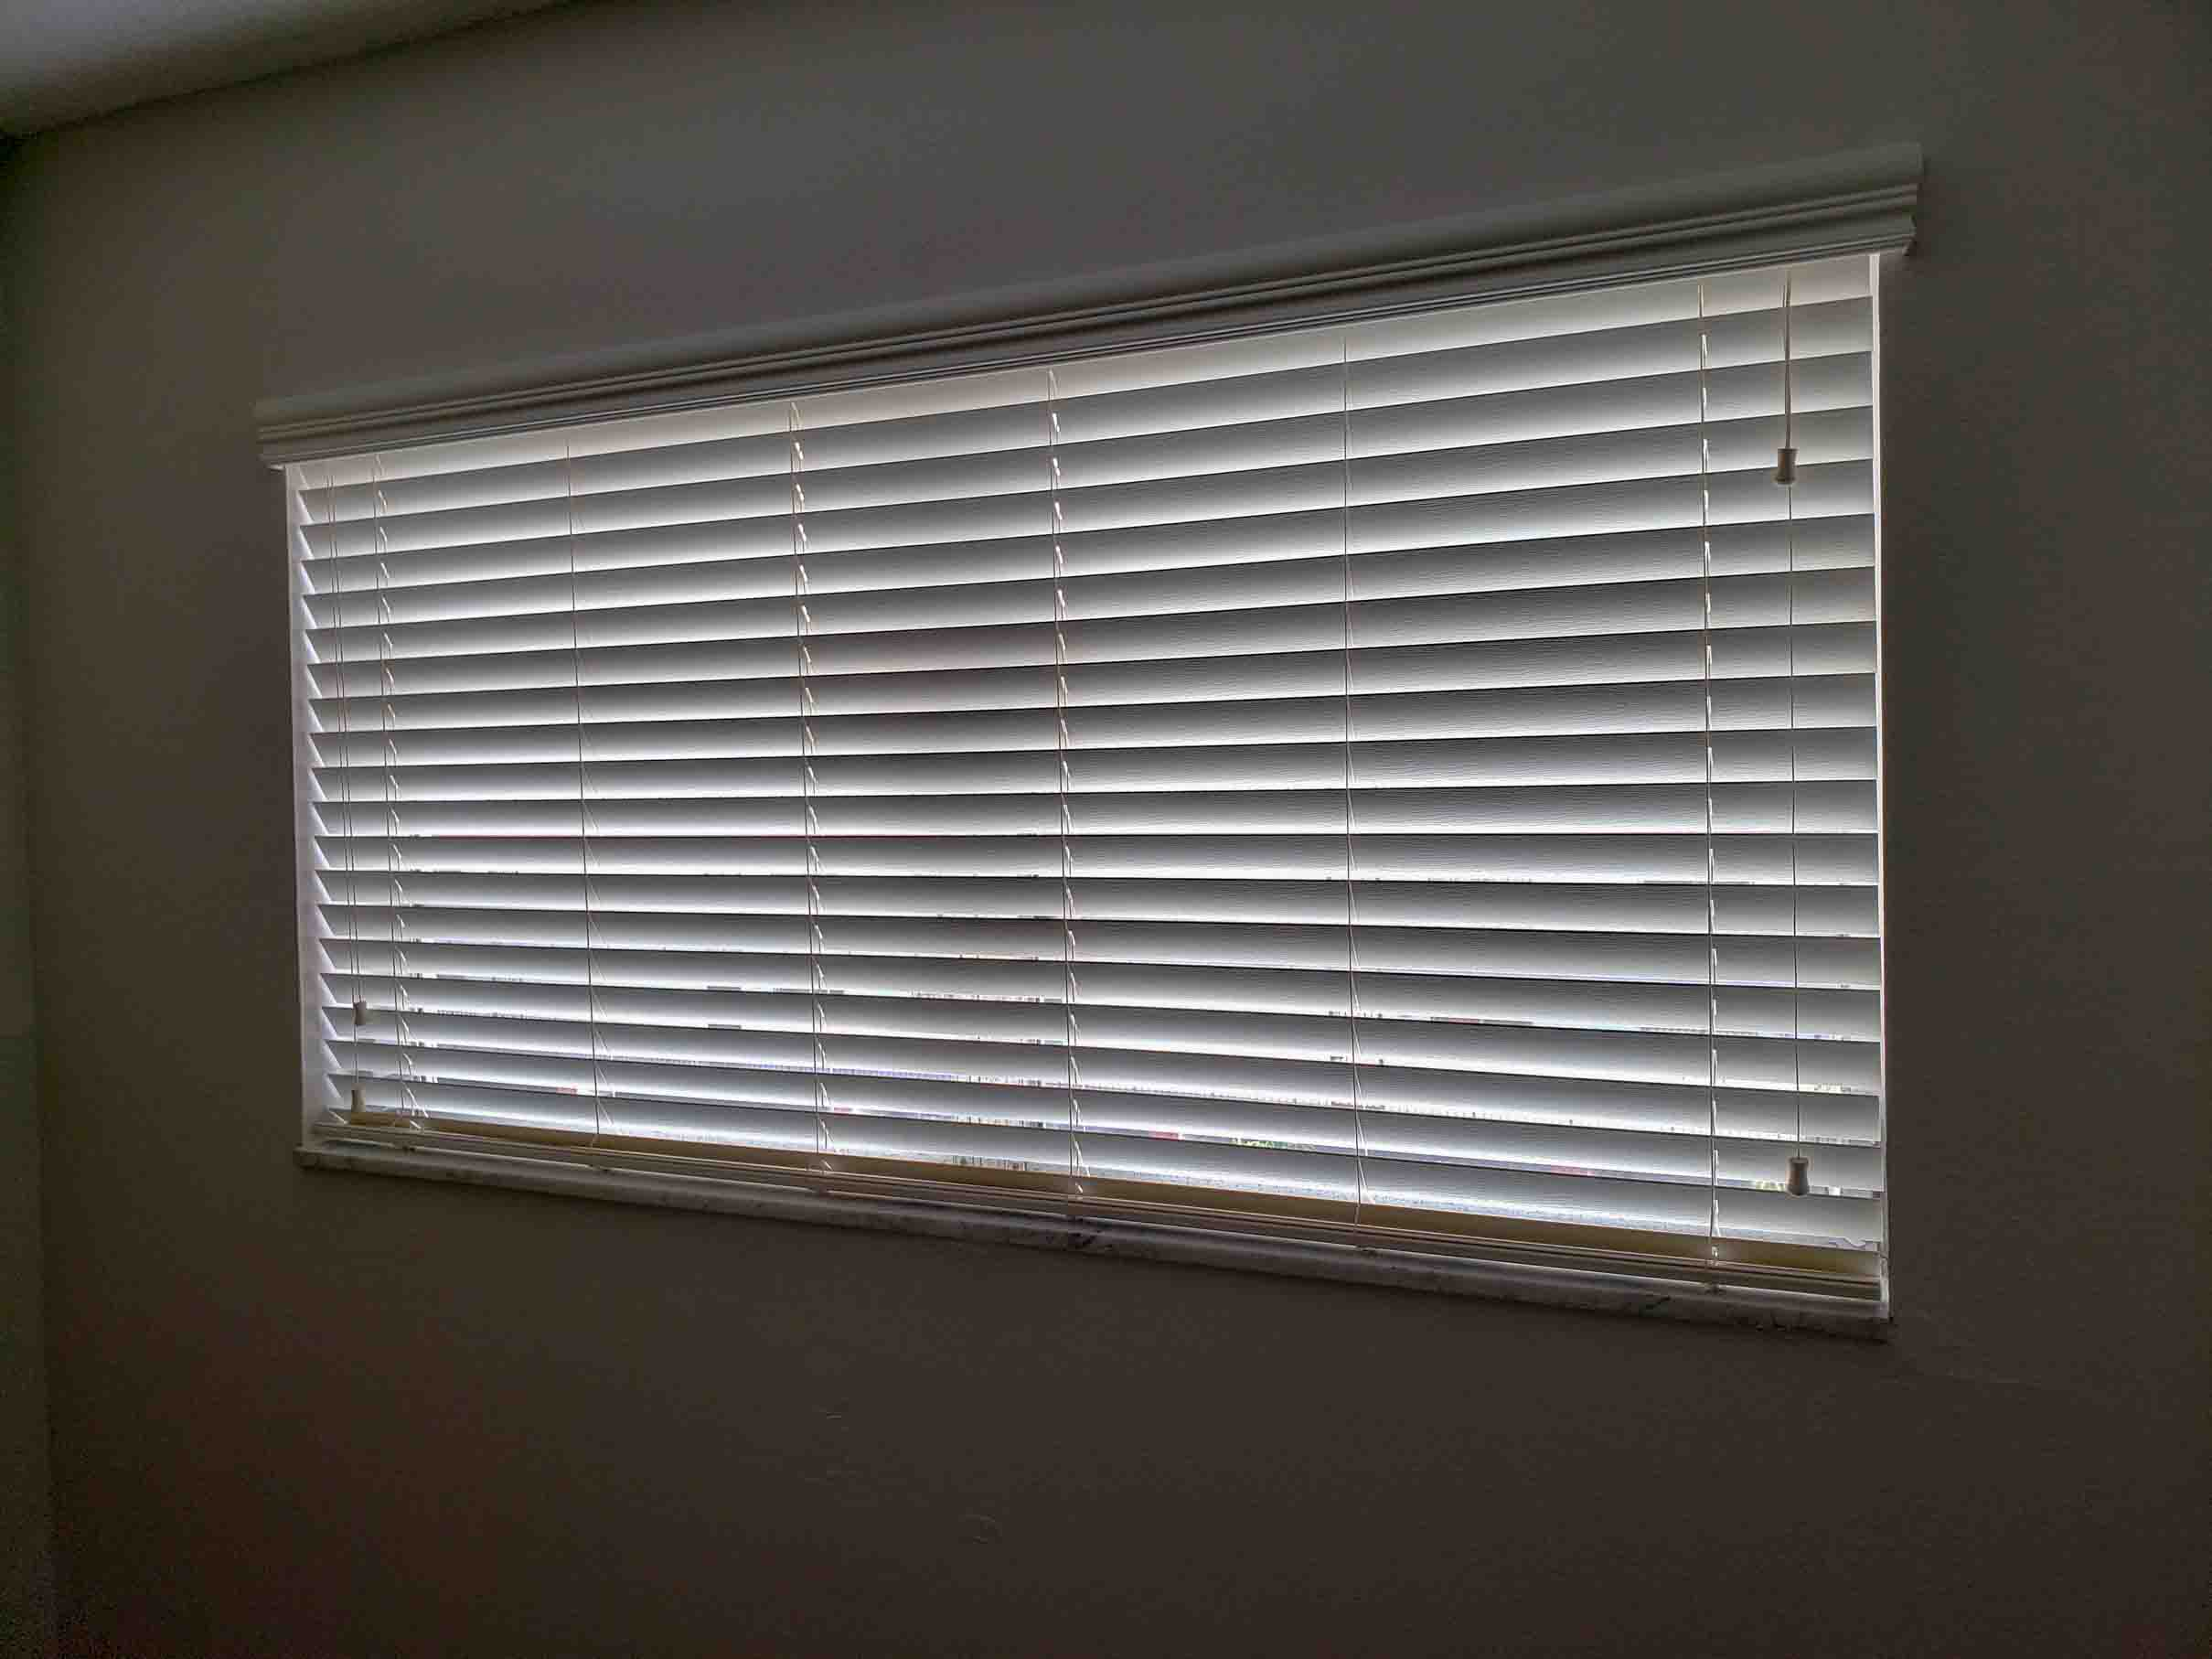 wood blinds gallery WOOD BLINDS GALLERY 20180502 102504